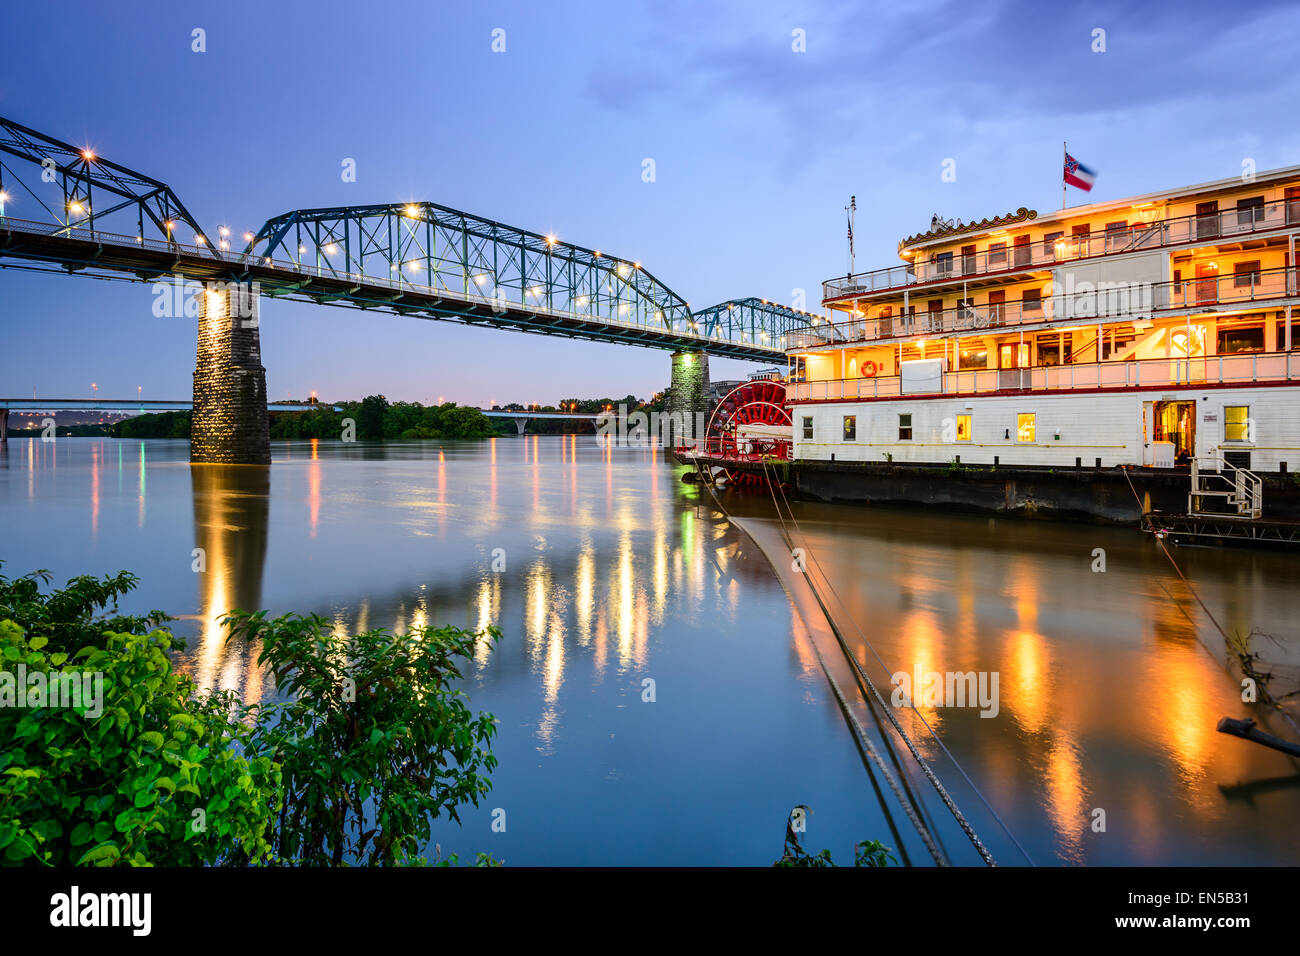 Chattanooga, Tennessee, USA riverfront. - Stock Image